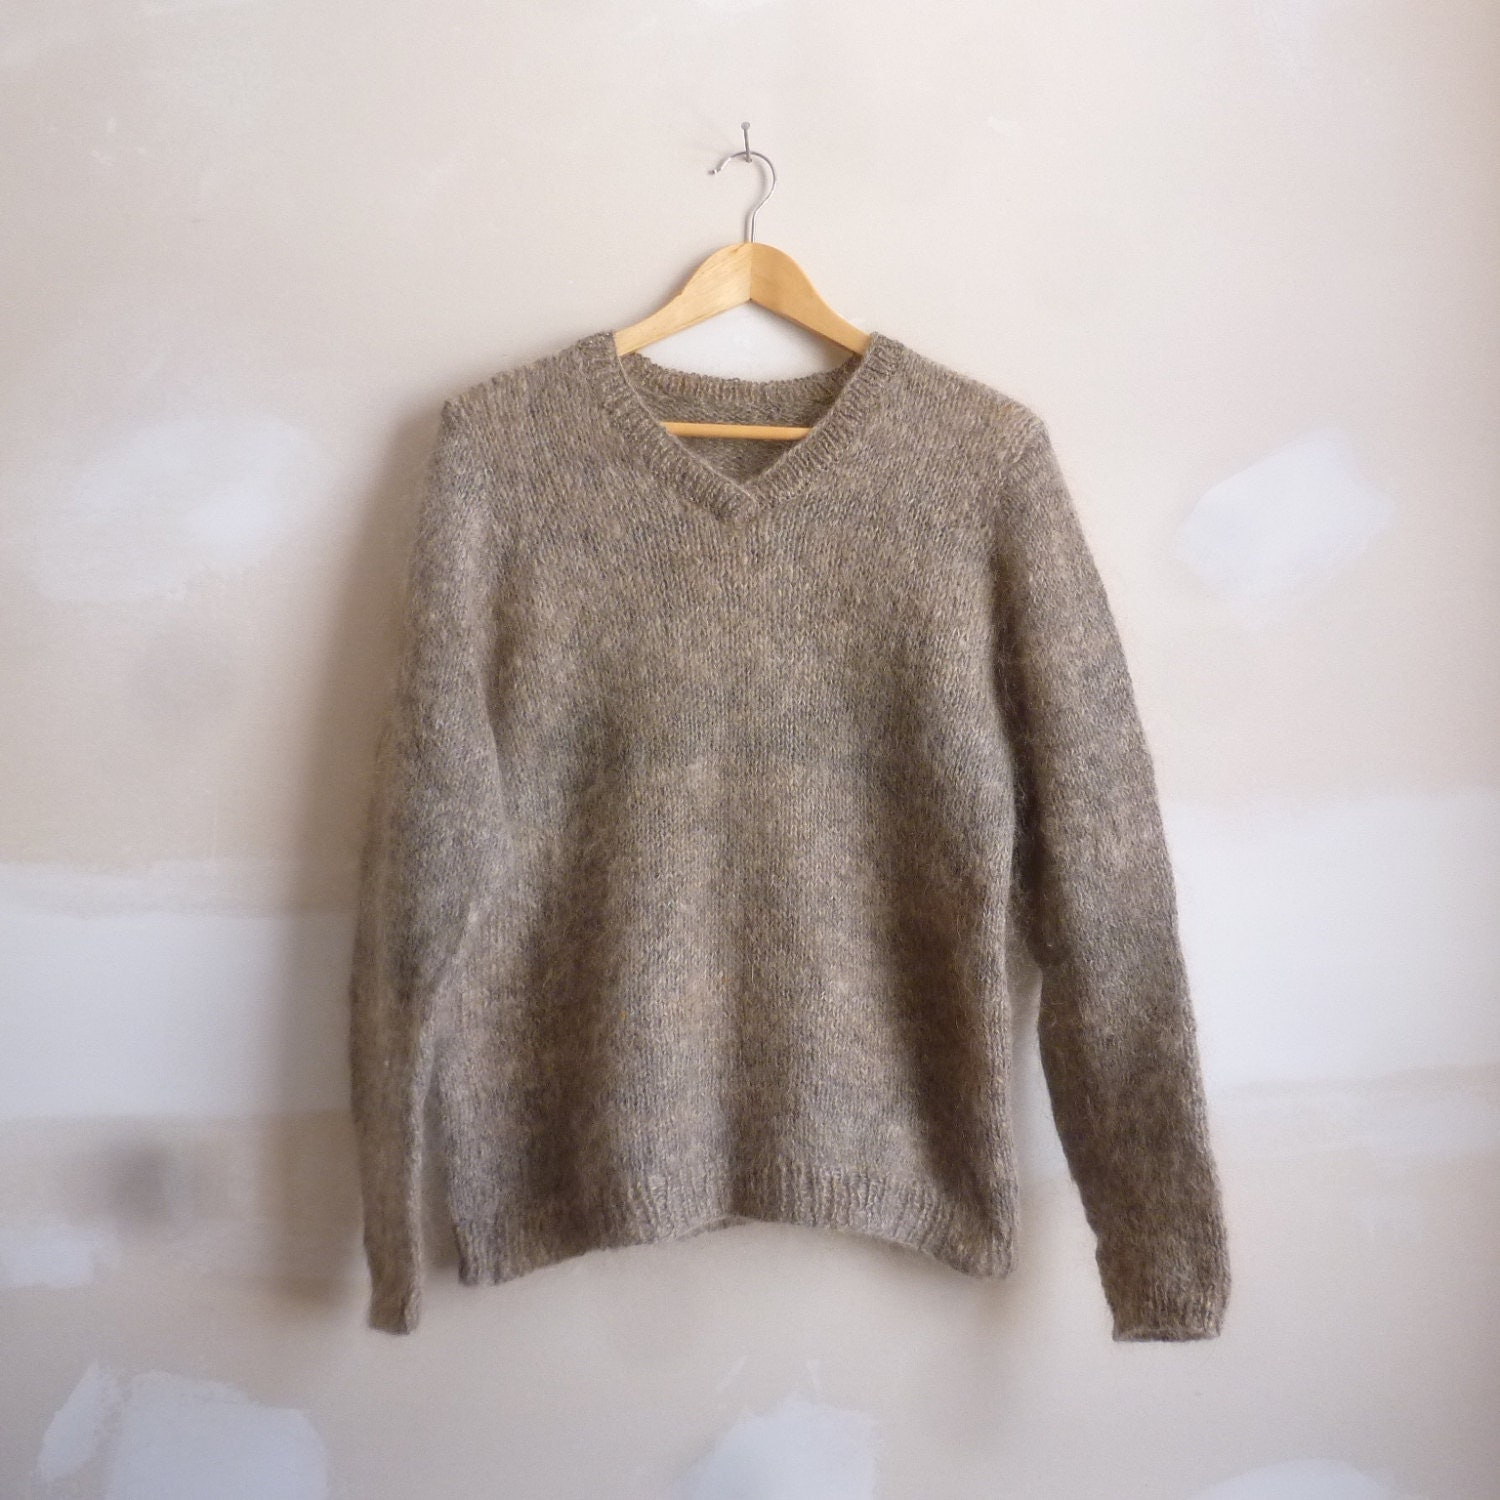 Items similar to Mohair Wool Sweater